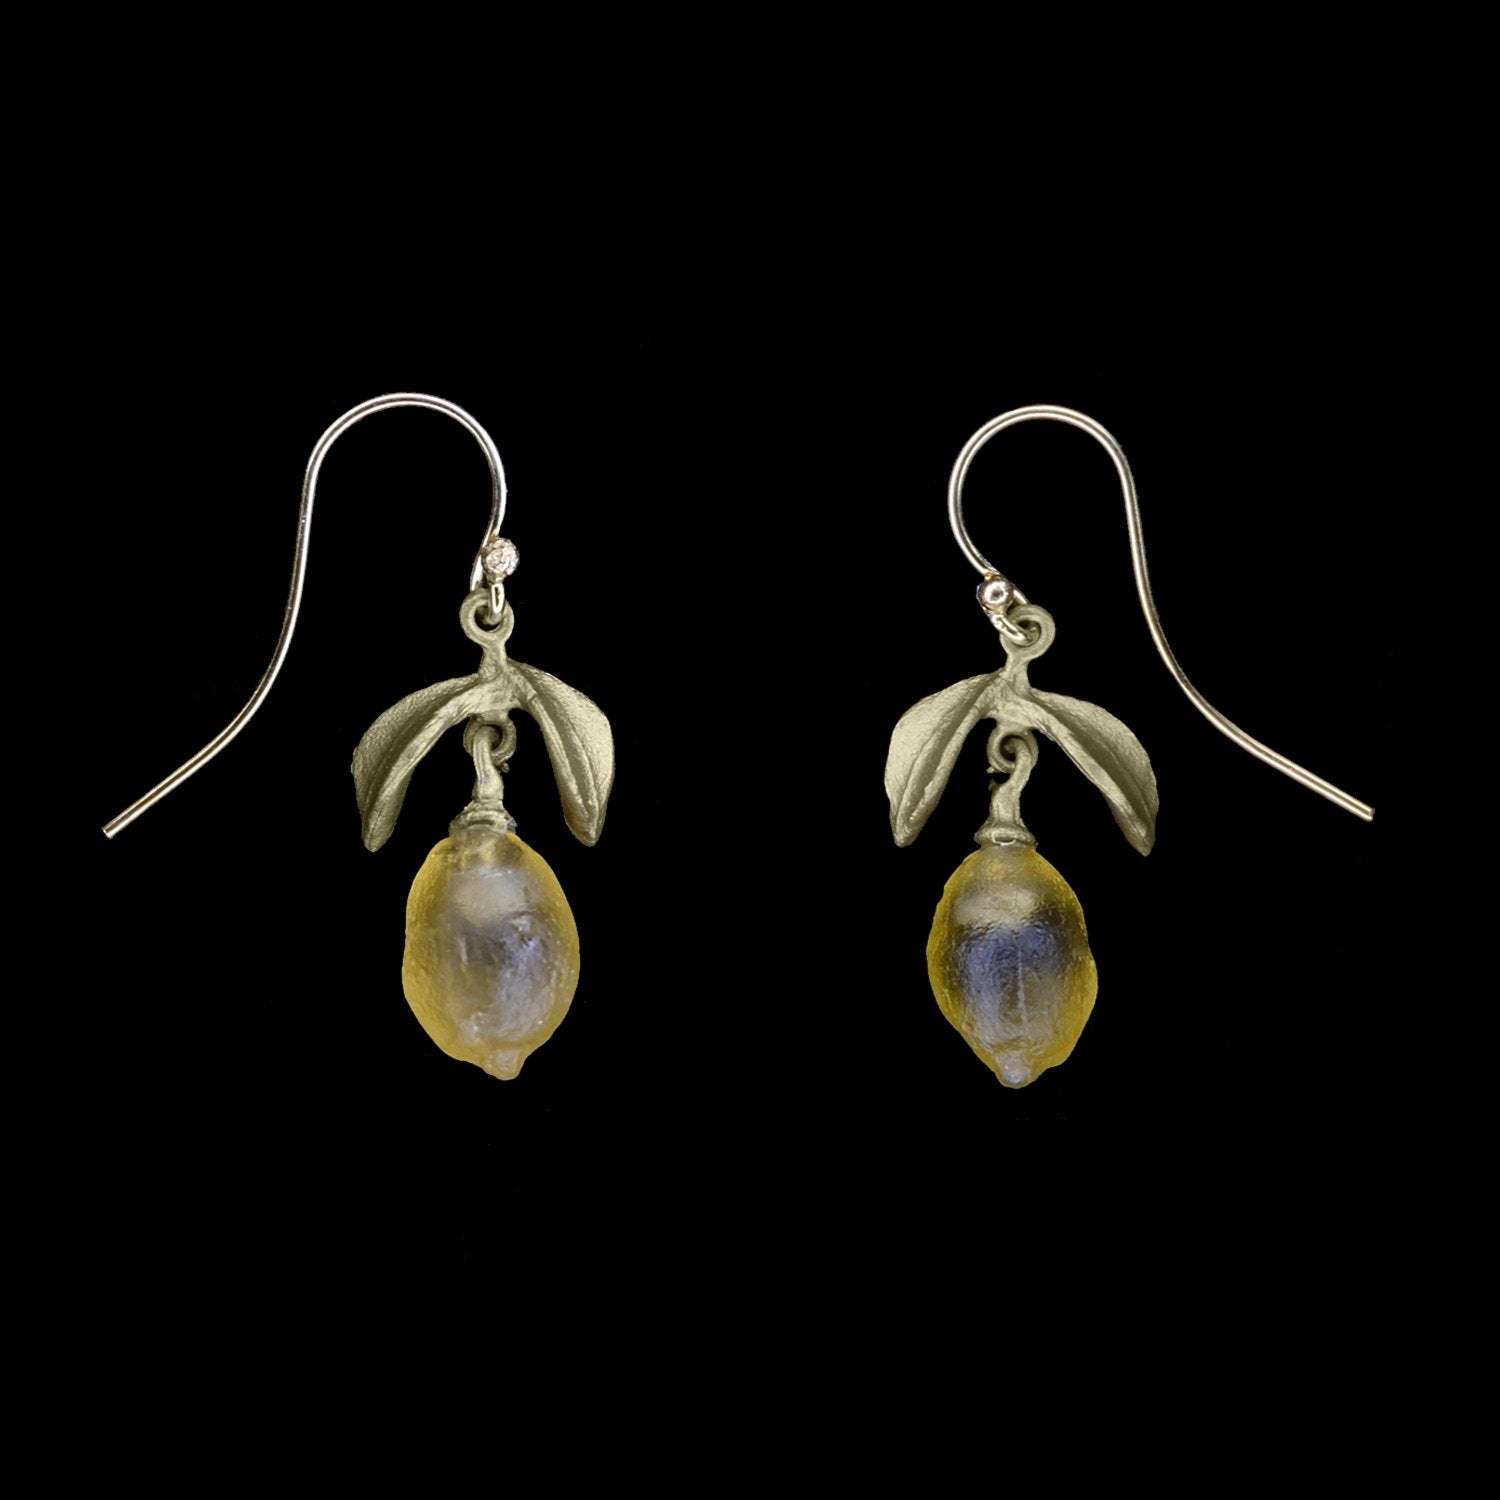 Lemon Drop Earrings - Dainty Wire